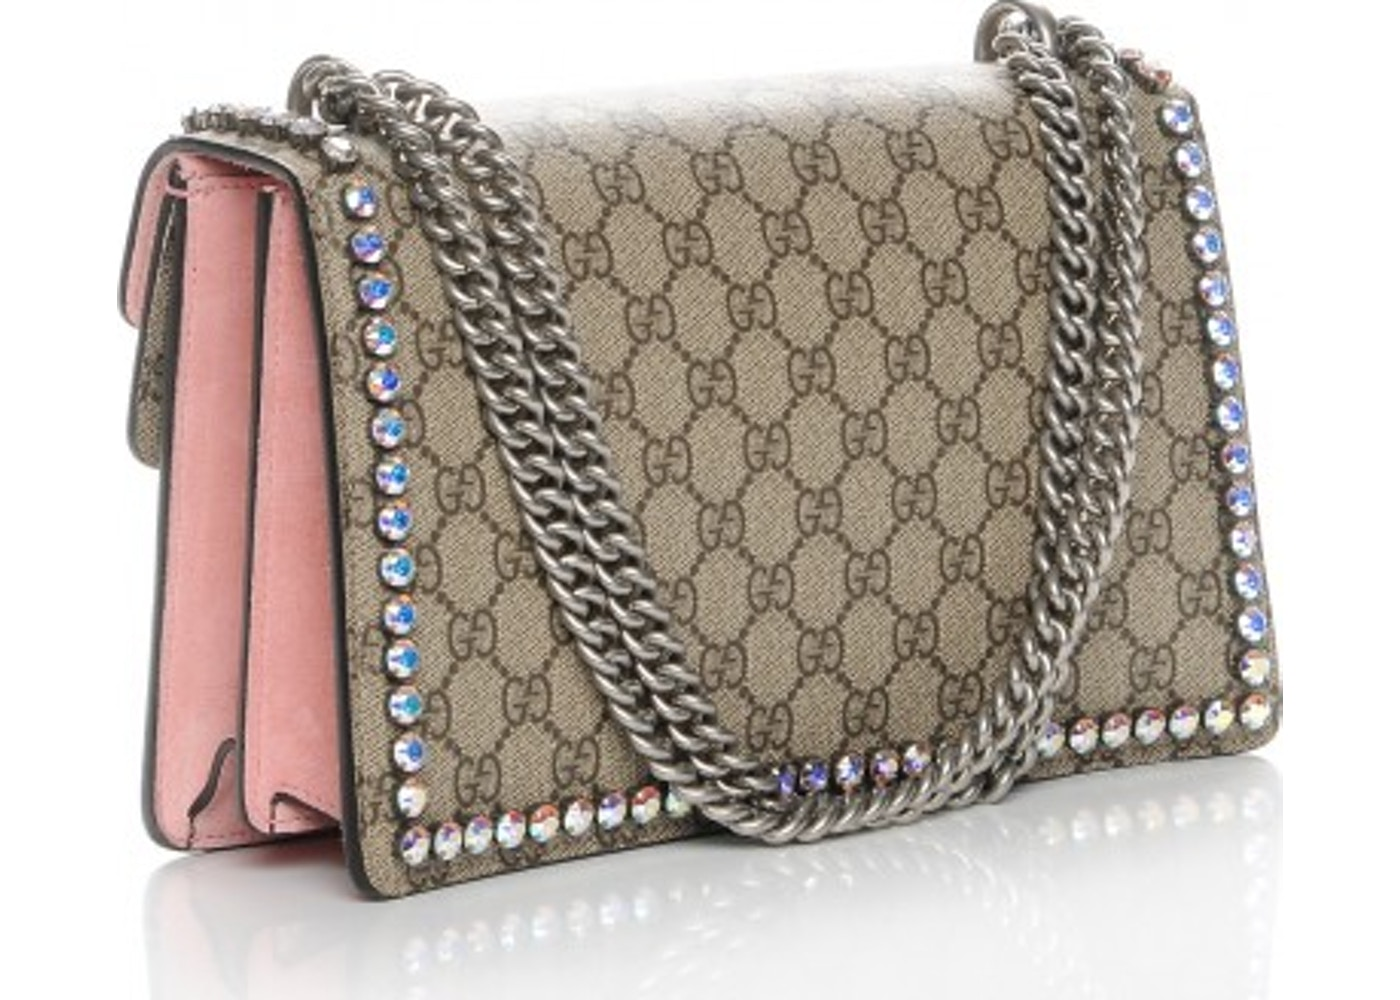 77c83b6e4cd Gucci Dionysus Shoulder Bag Monogram GG Supreme Crystal Small Brown Beige  Pink